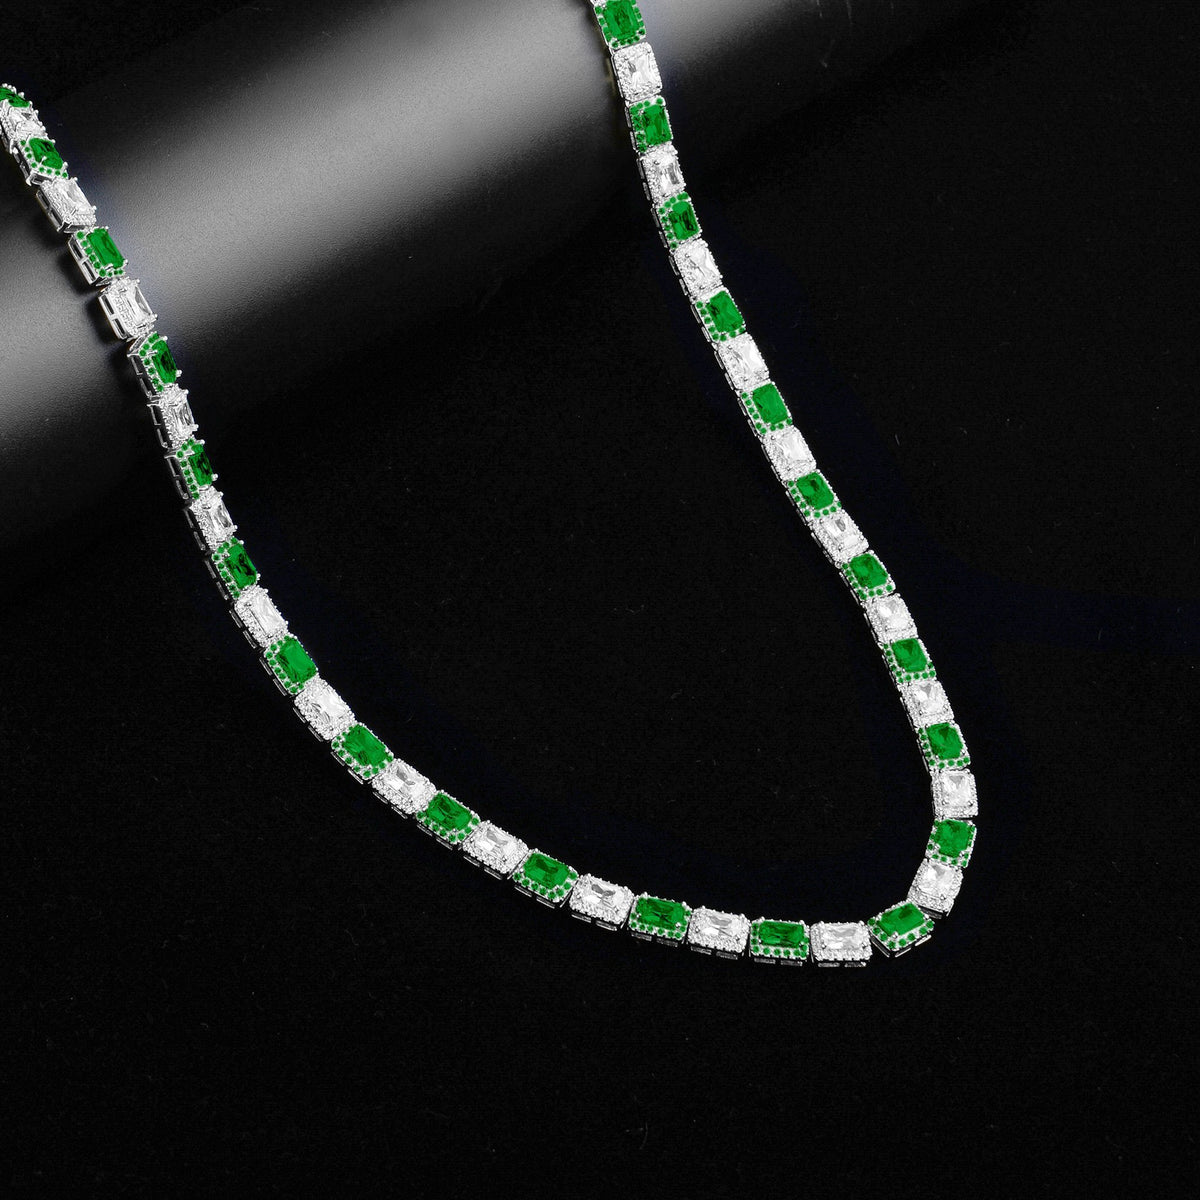 6mm Square Tennis Chain